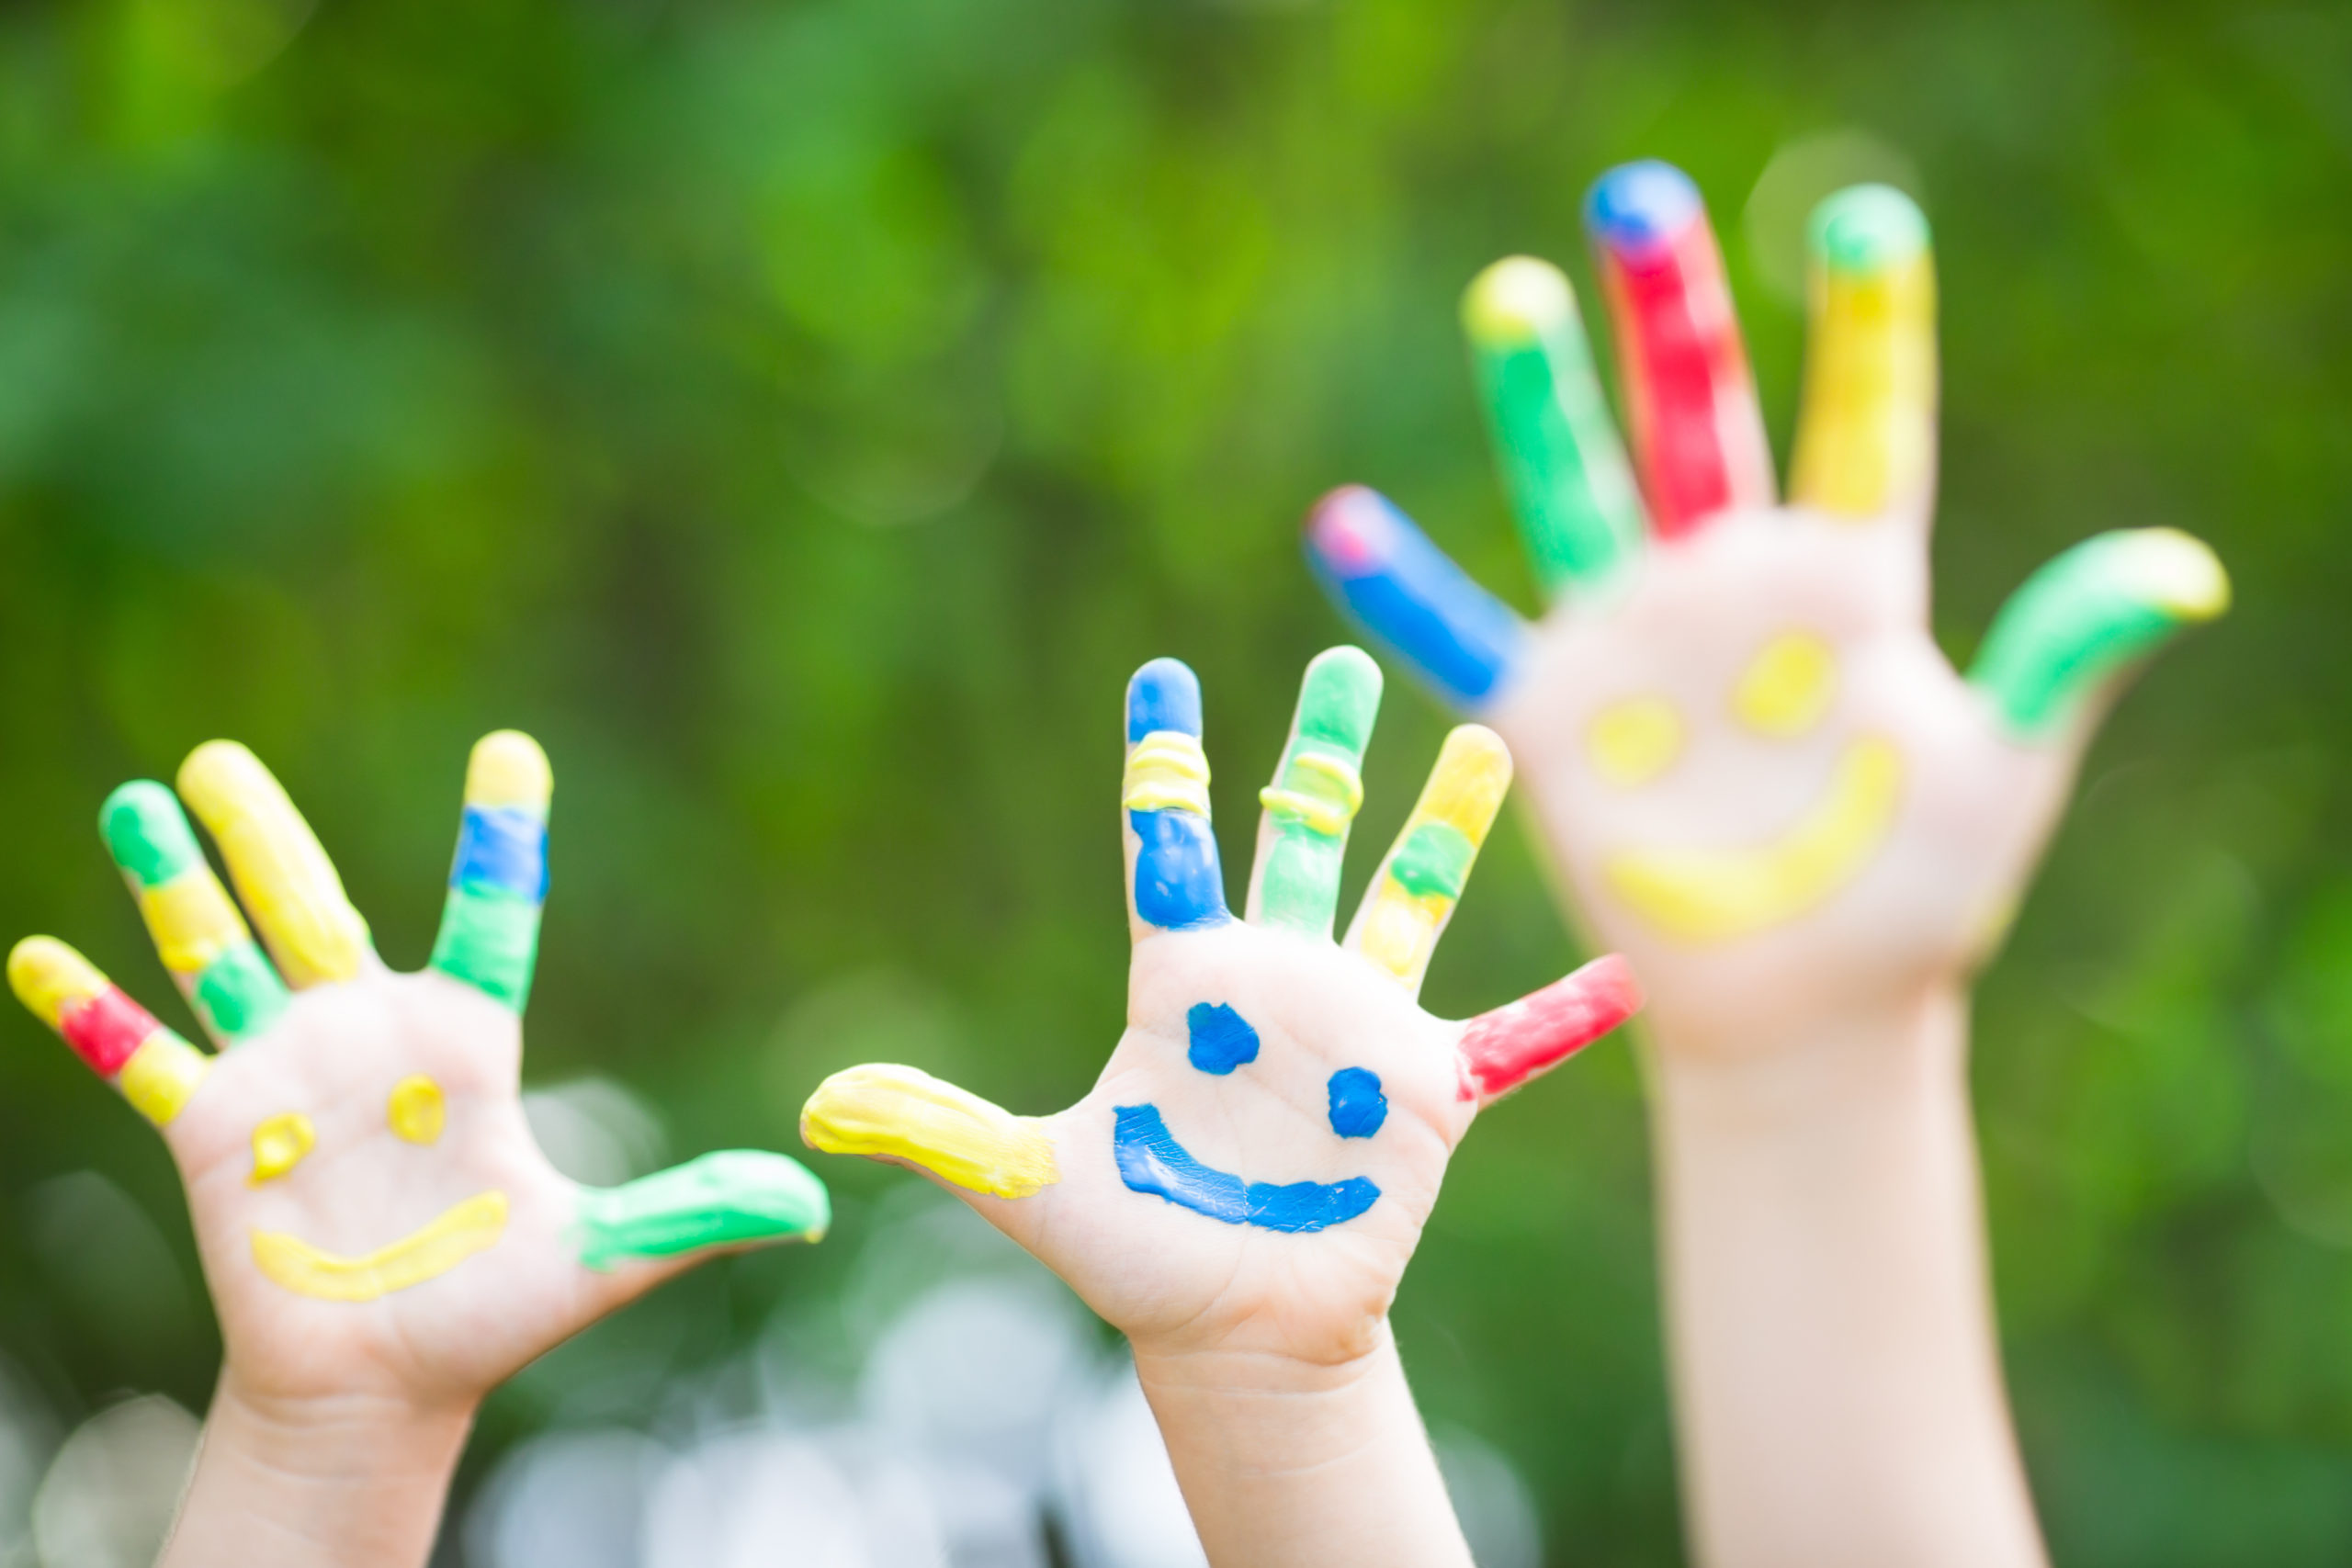 Kid hands with paint in their fingers and a happy face in the palm